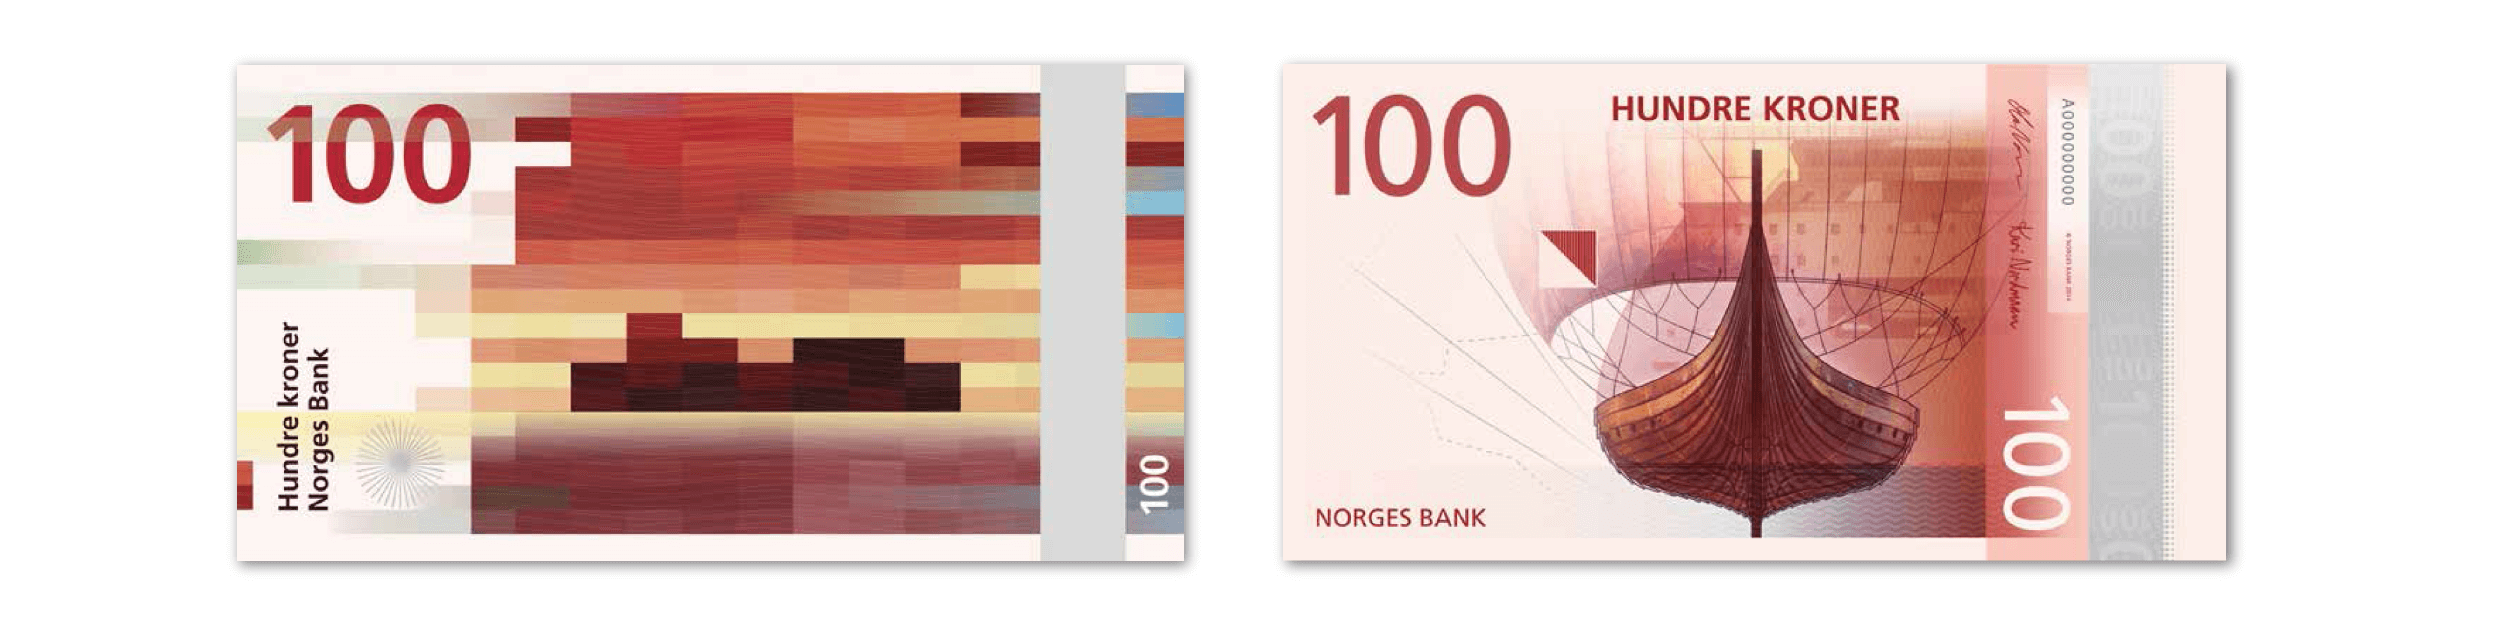 Norway Currency Redesign_100-kroner